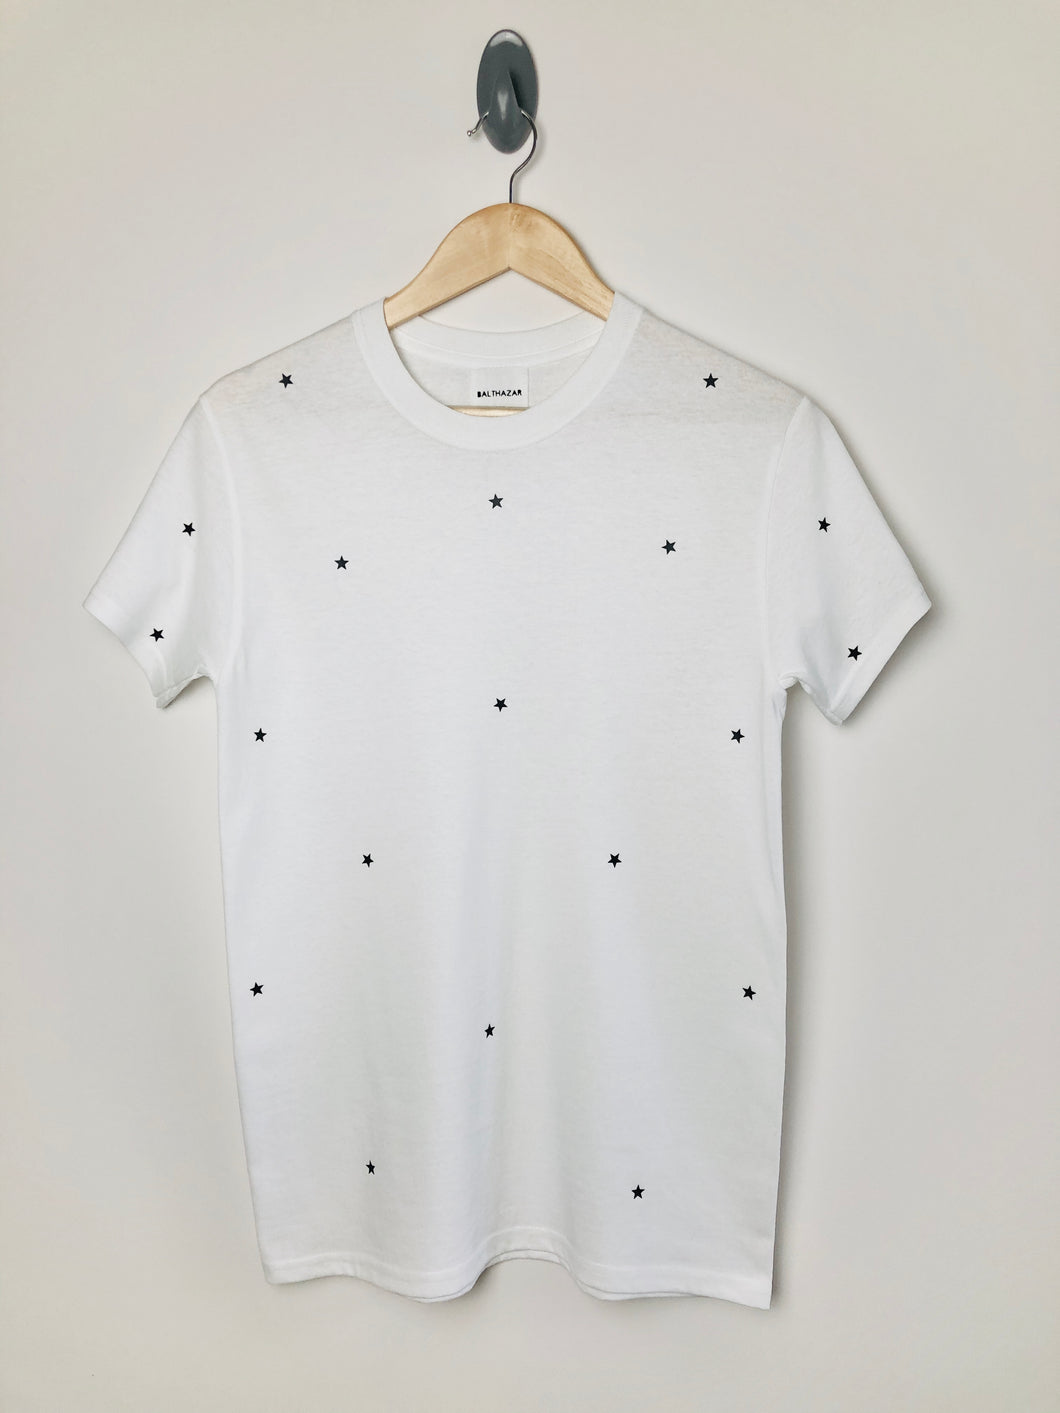 Miniature star t-shirt - Unisex